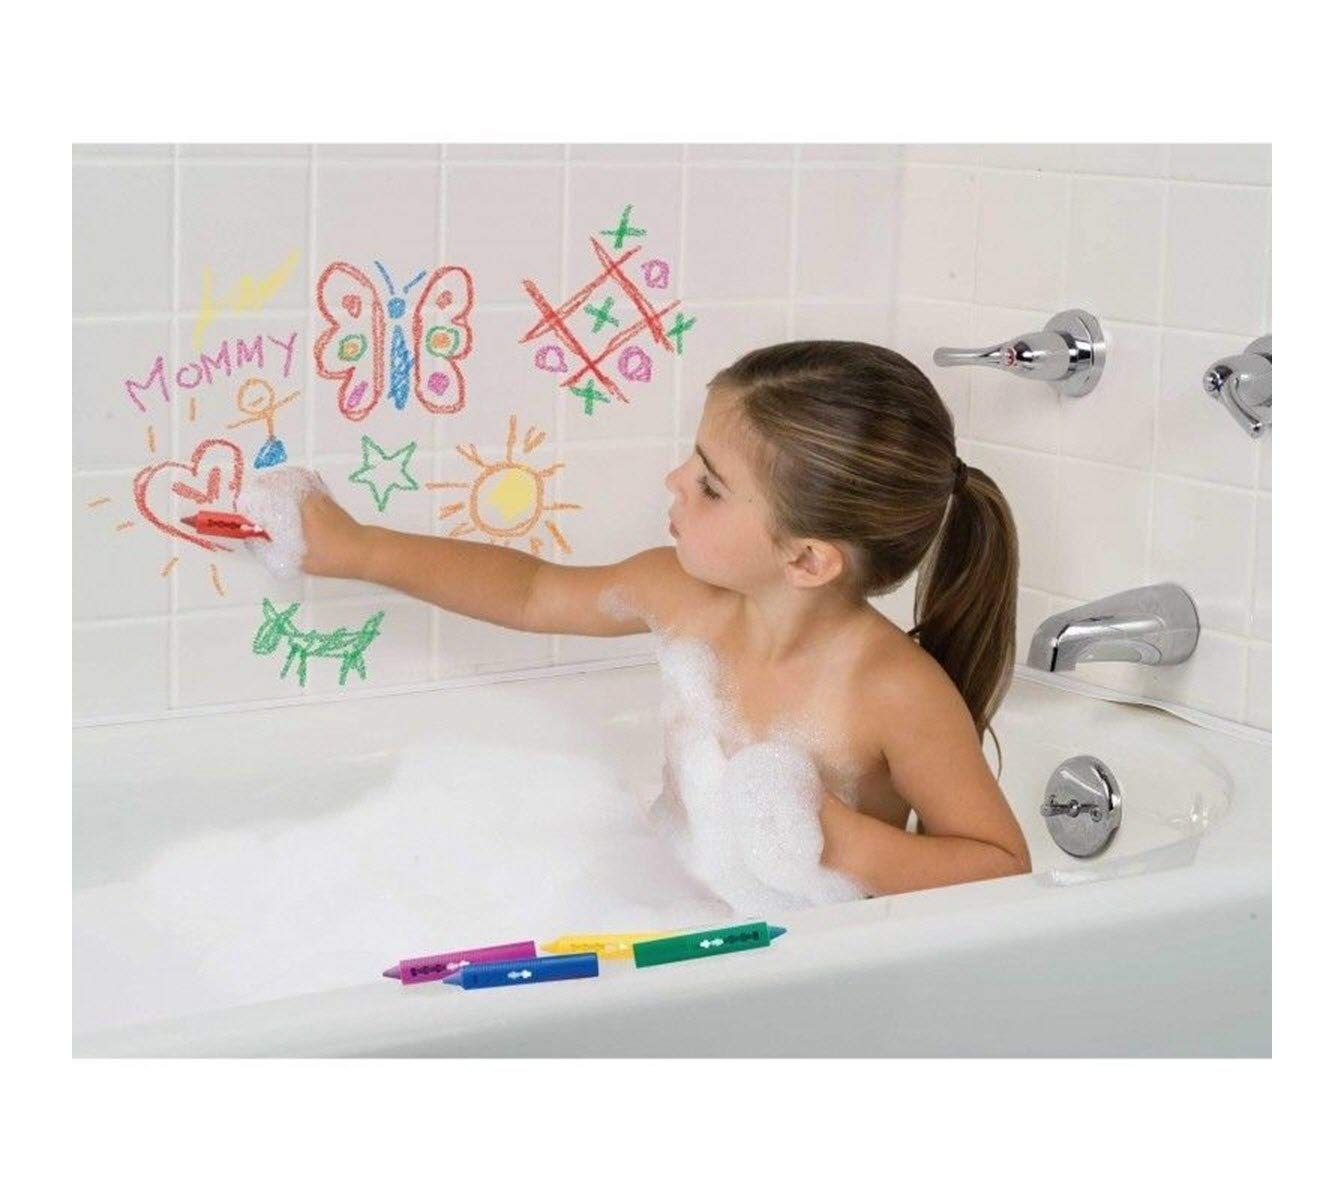 6x BABY BATH CRAYONS Non Toxing Education Fun Toy Easy Washable Crayoning Wipe